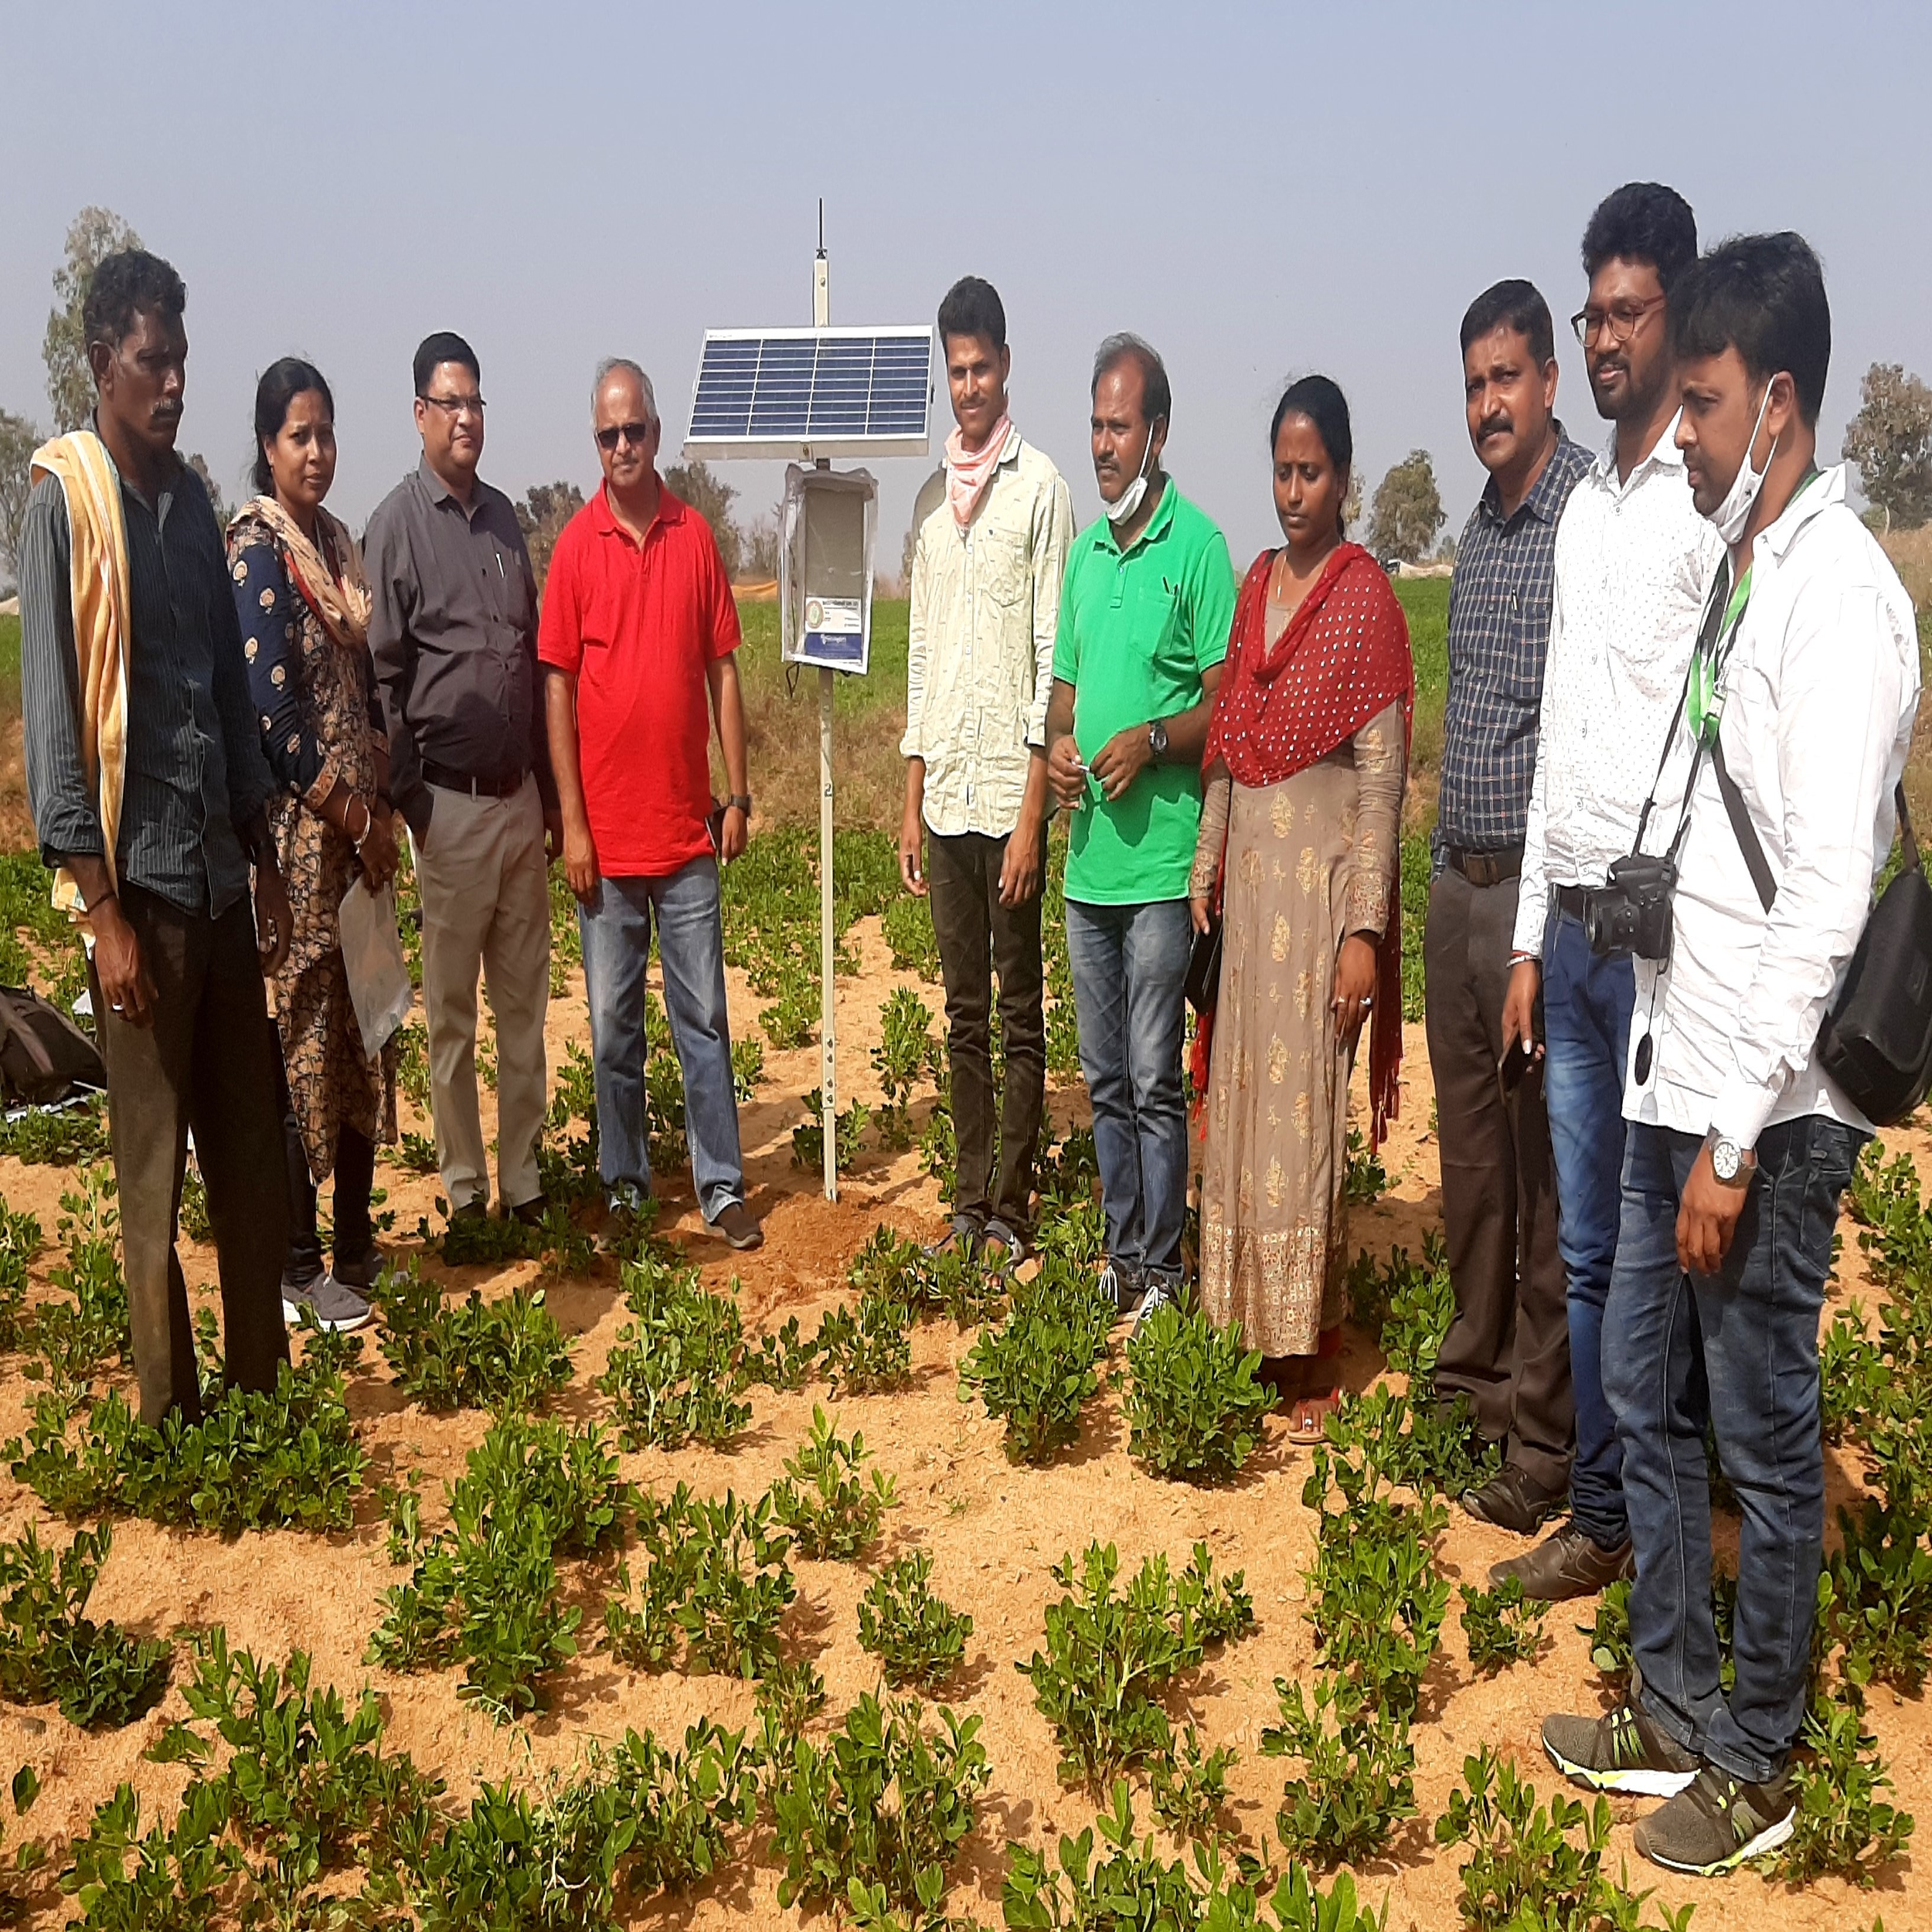 32_Fathepur (V,M), Mahabubnagar (D), DAAT Center_19Dec2020 (2)